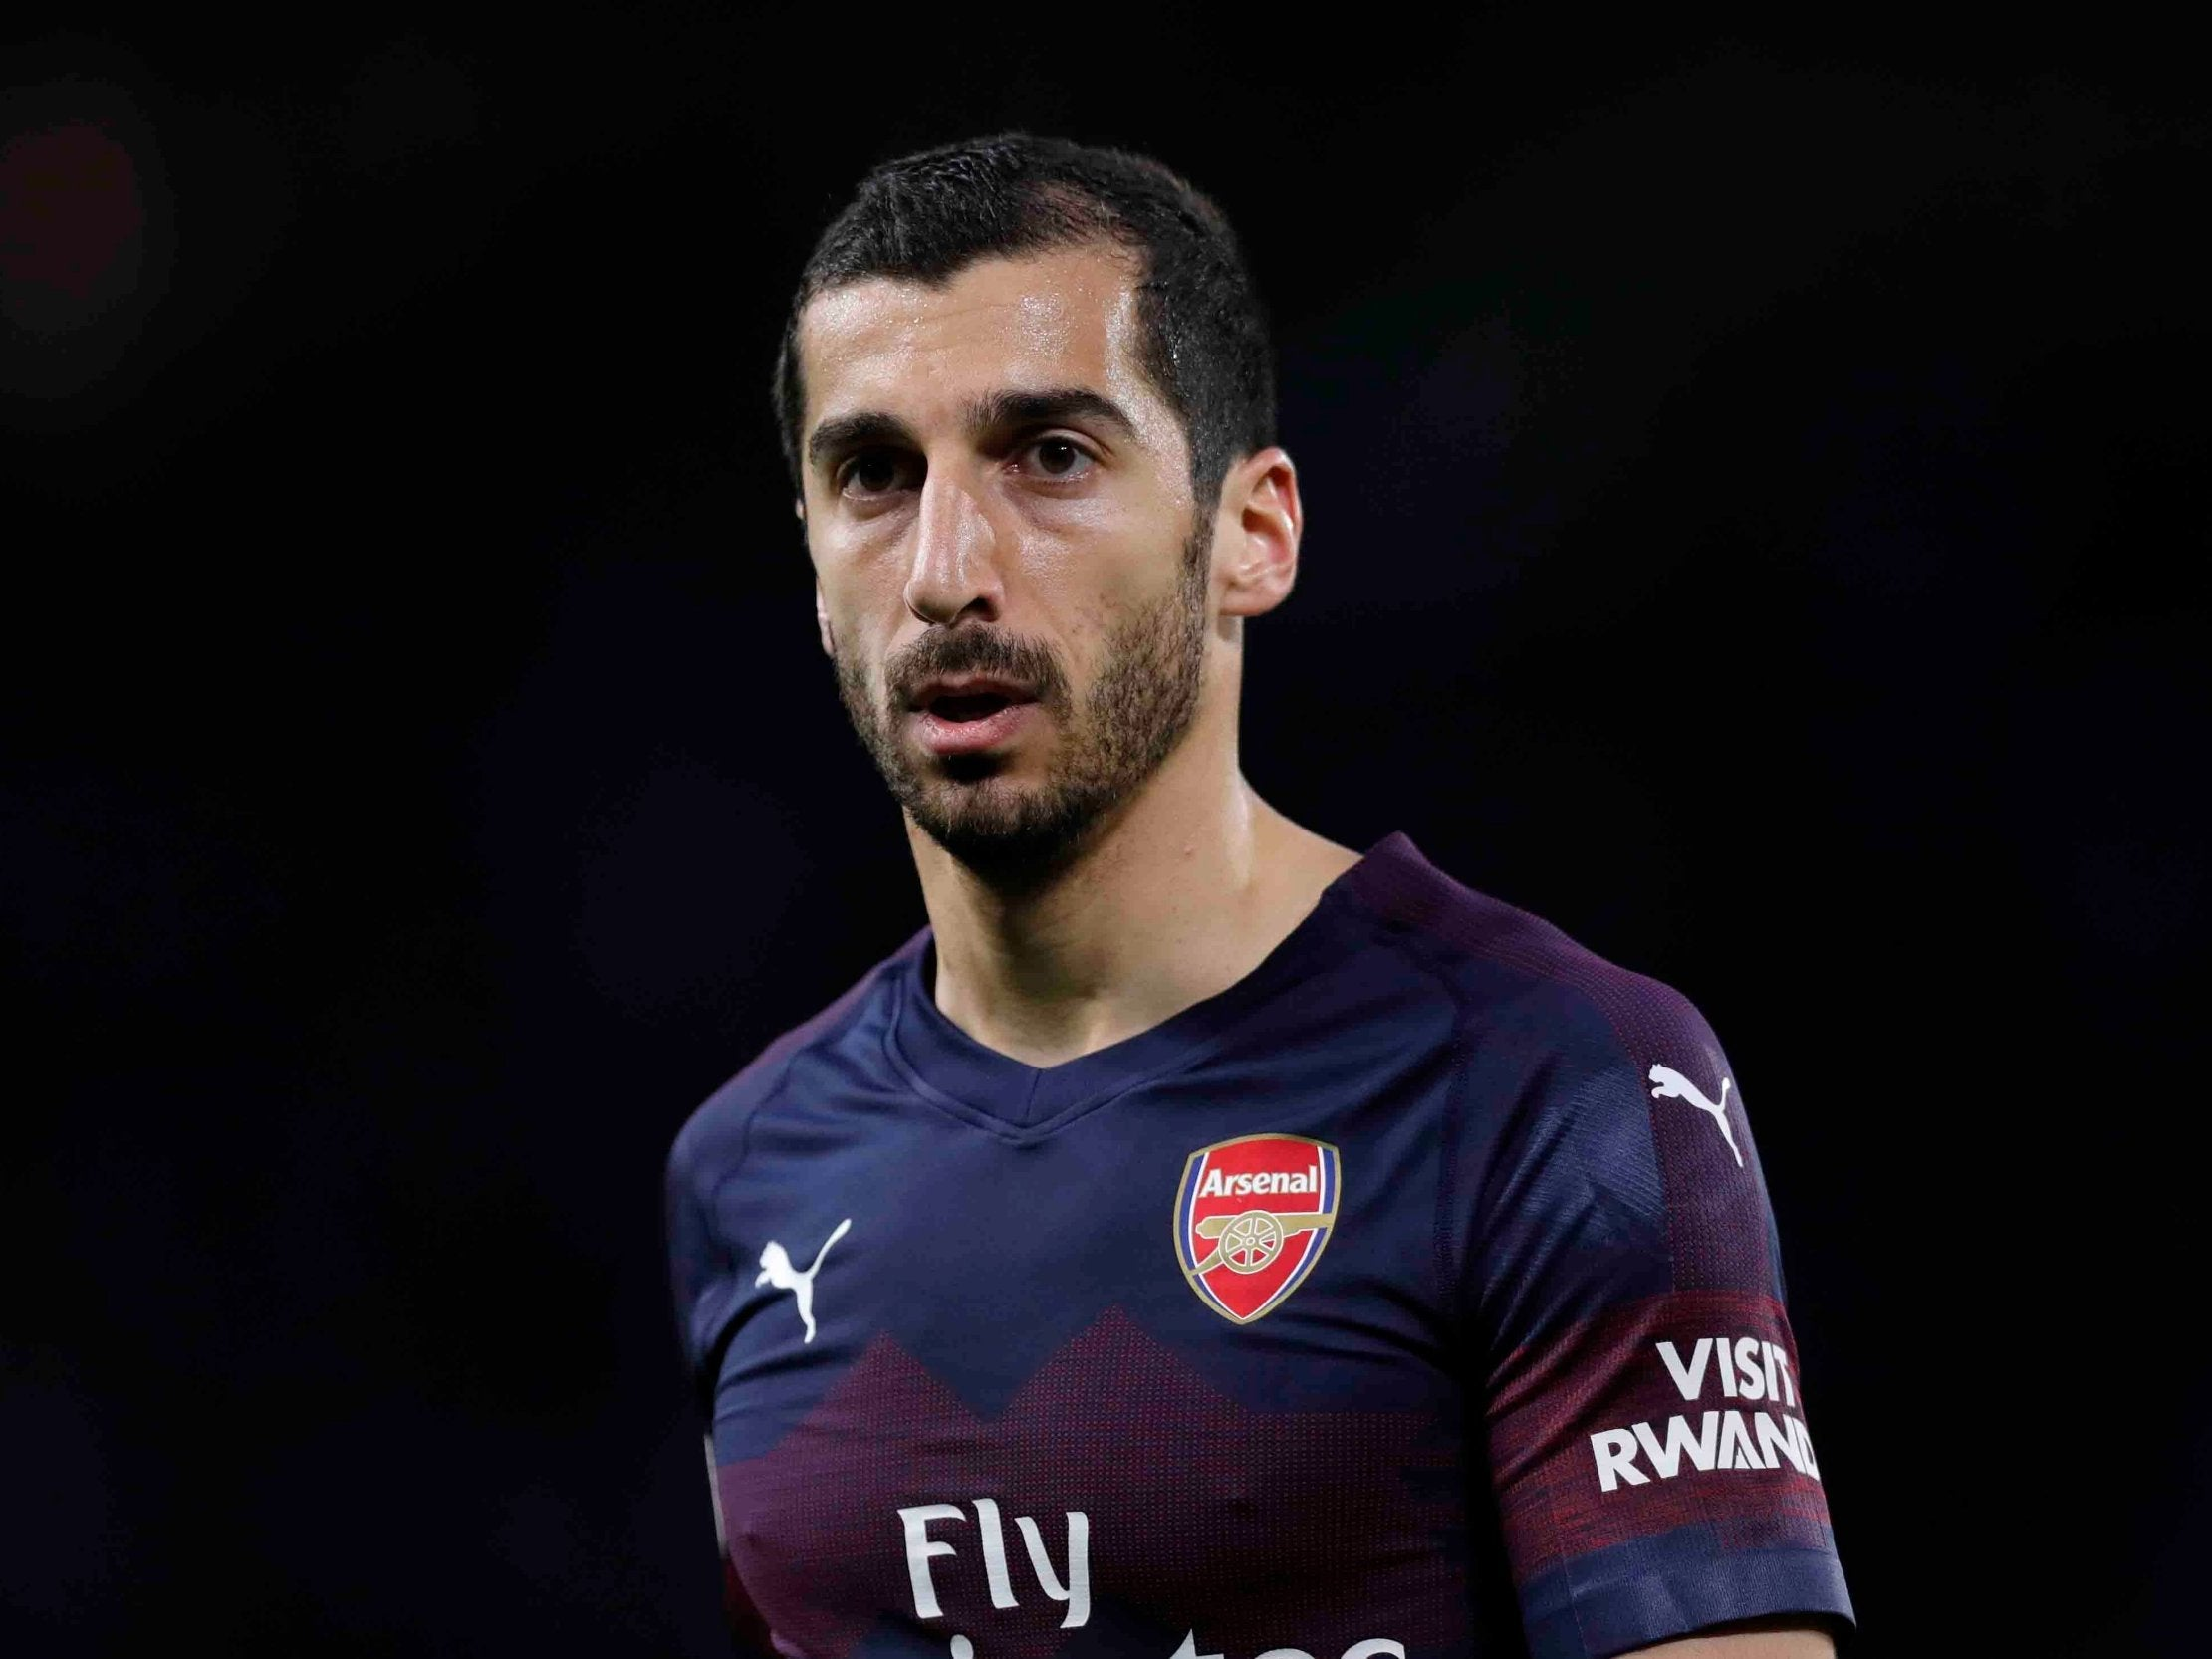 2abcd634818 Henrikh Mkhitaryan  Arsenal footballer has given European leaders the  perfect opportunity to mediate the age-old conflict between Azerbaijan and  Armenia ...